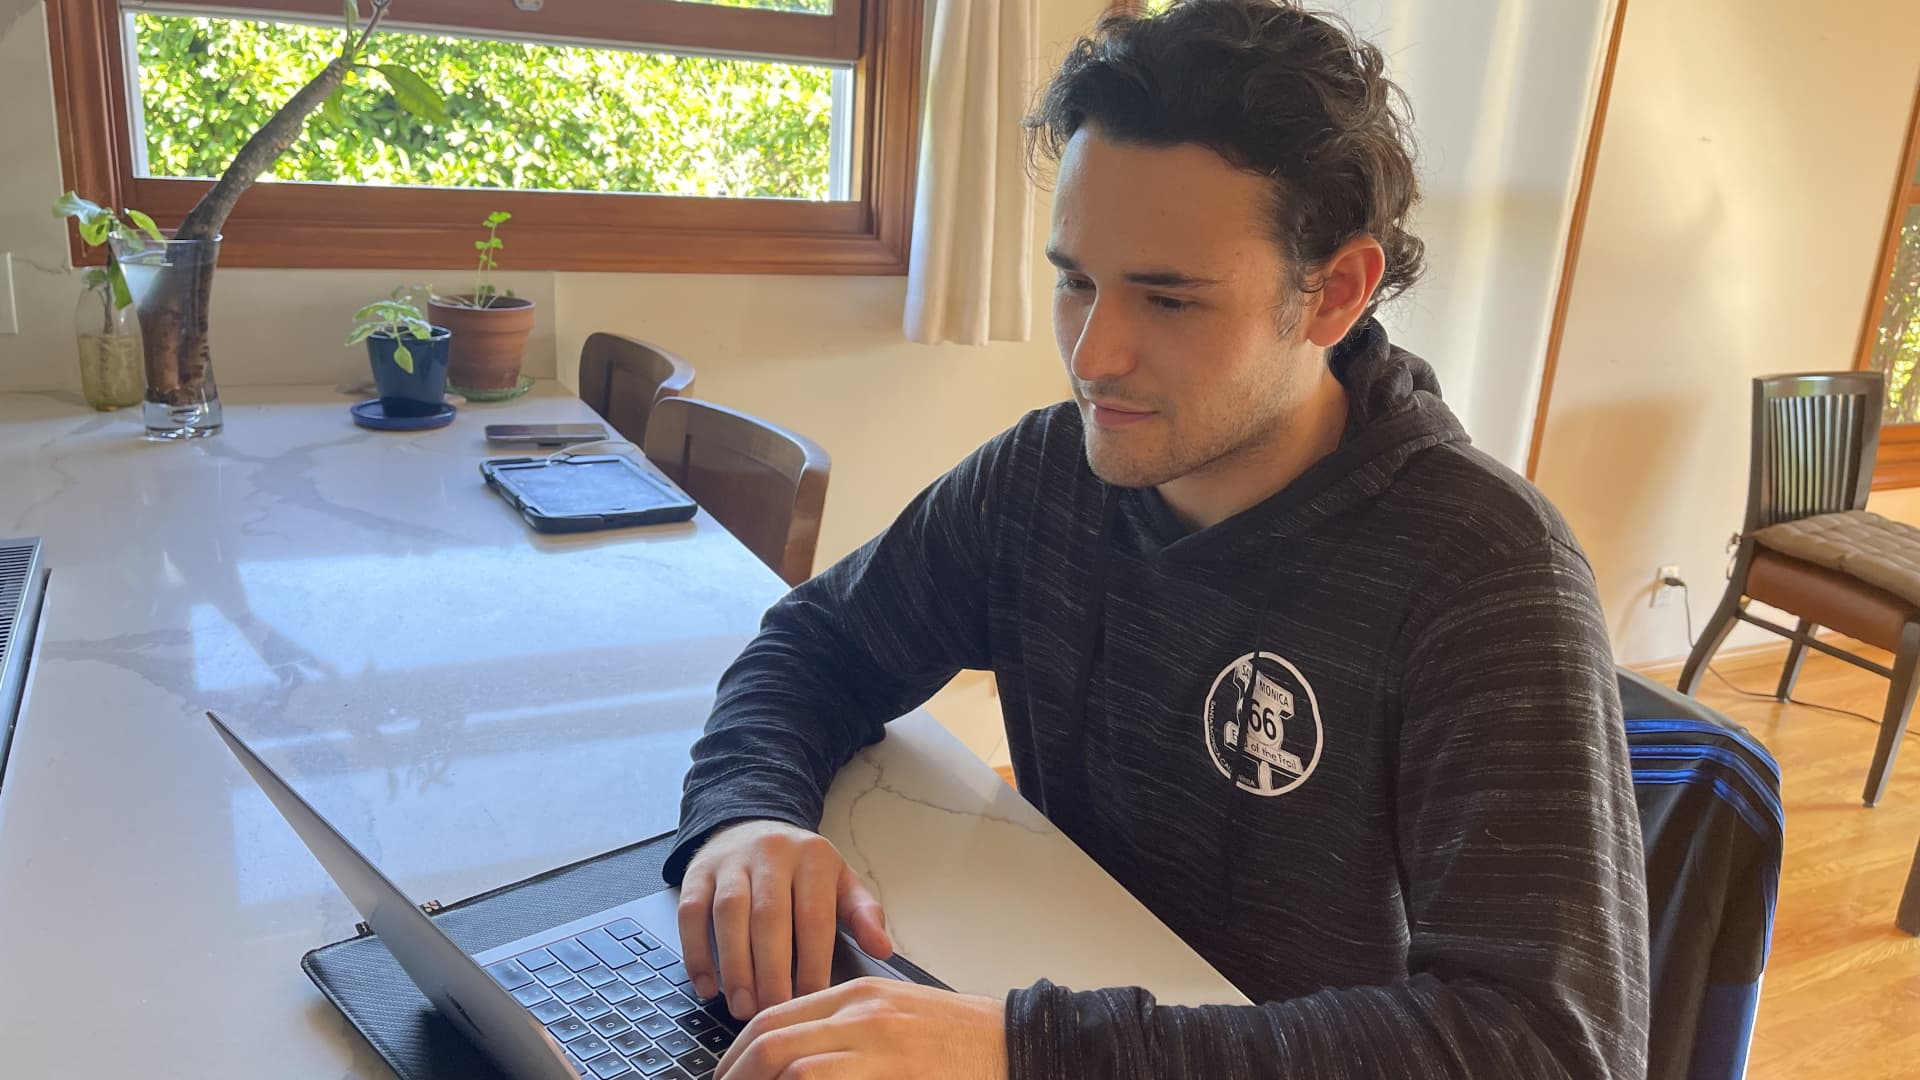 Etienne Lunetta, Co-founder of Leonard Cyber and Holo AI